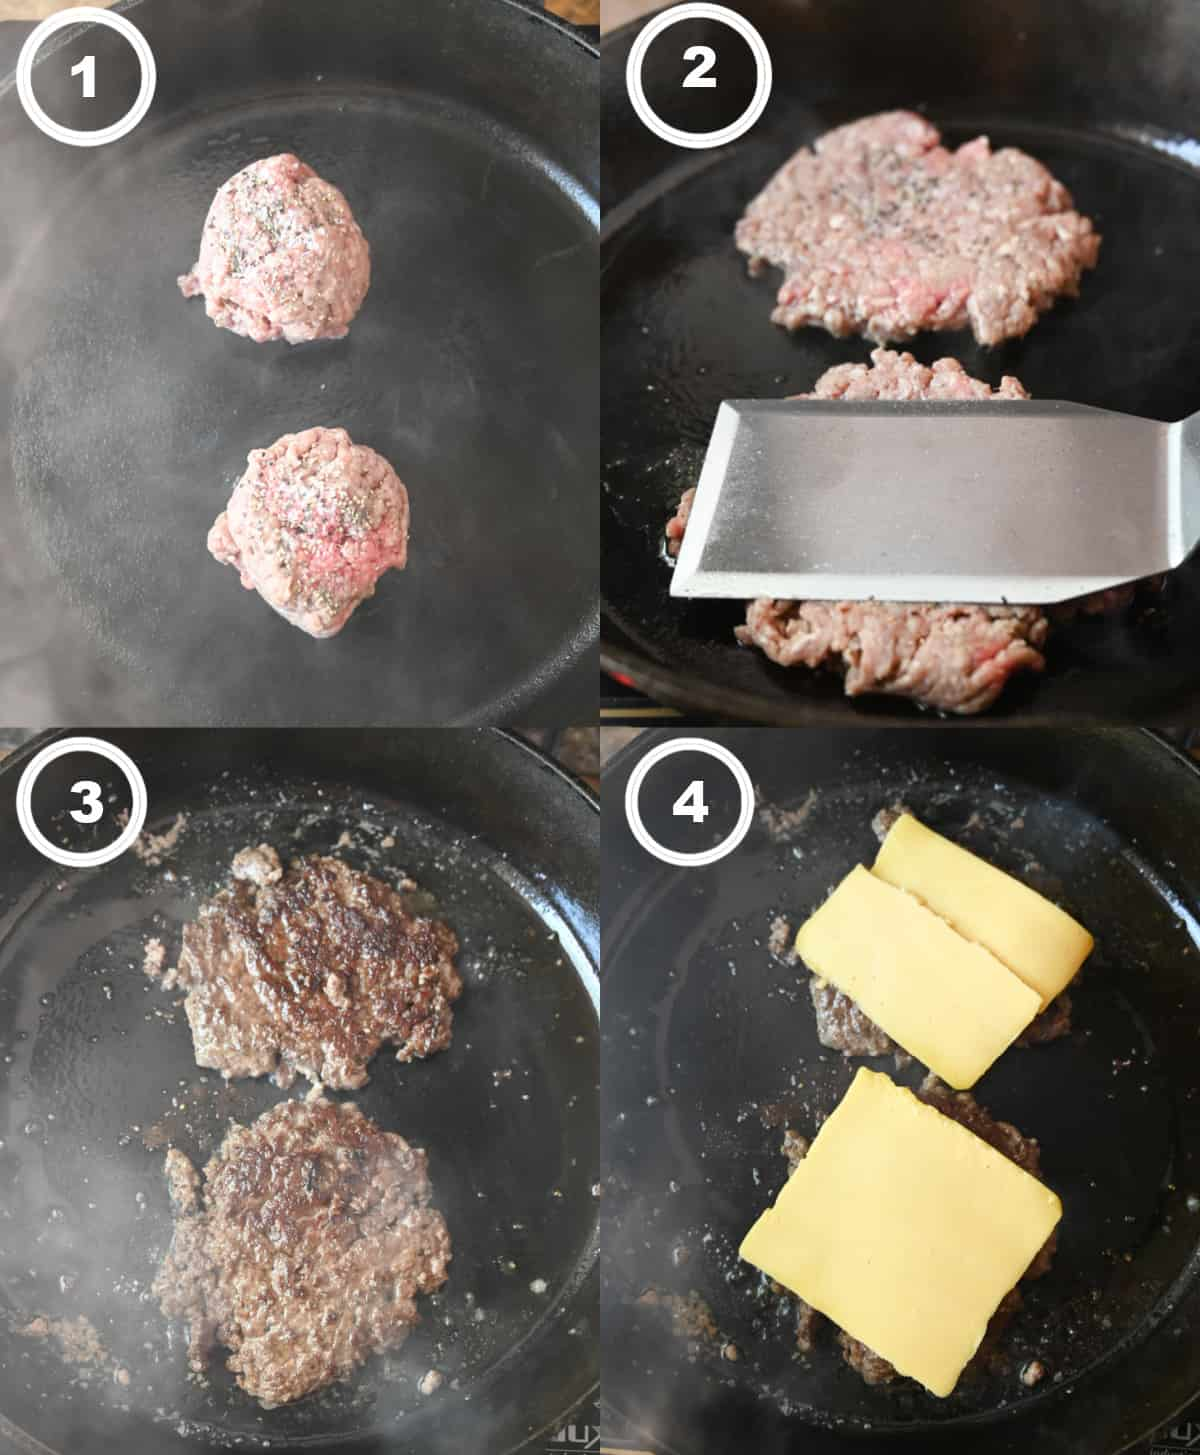 Four process photos. First one, two ground beef balls in a cast iron skillet. Secone one, spatula pressing the meat down, Third one, beef patty that has been flipped in a cast iron skillet. Fourth one, american cheese that has been placed on top.